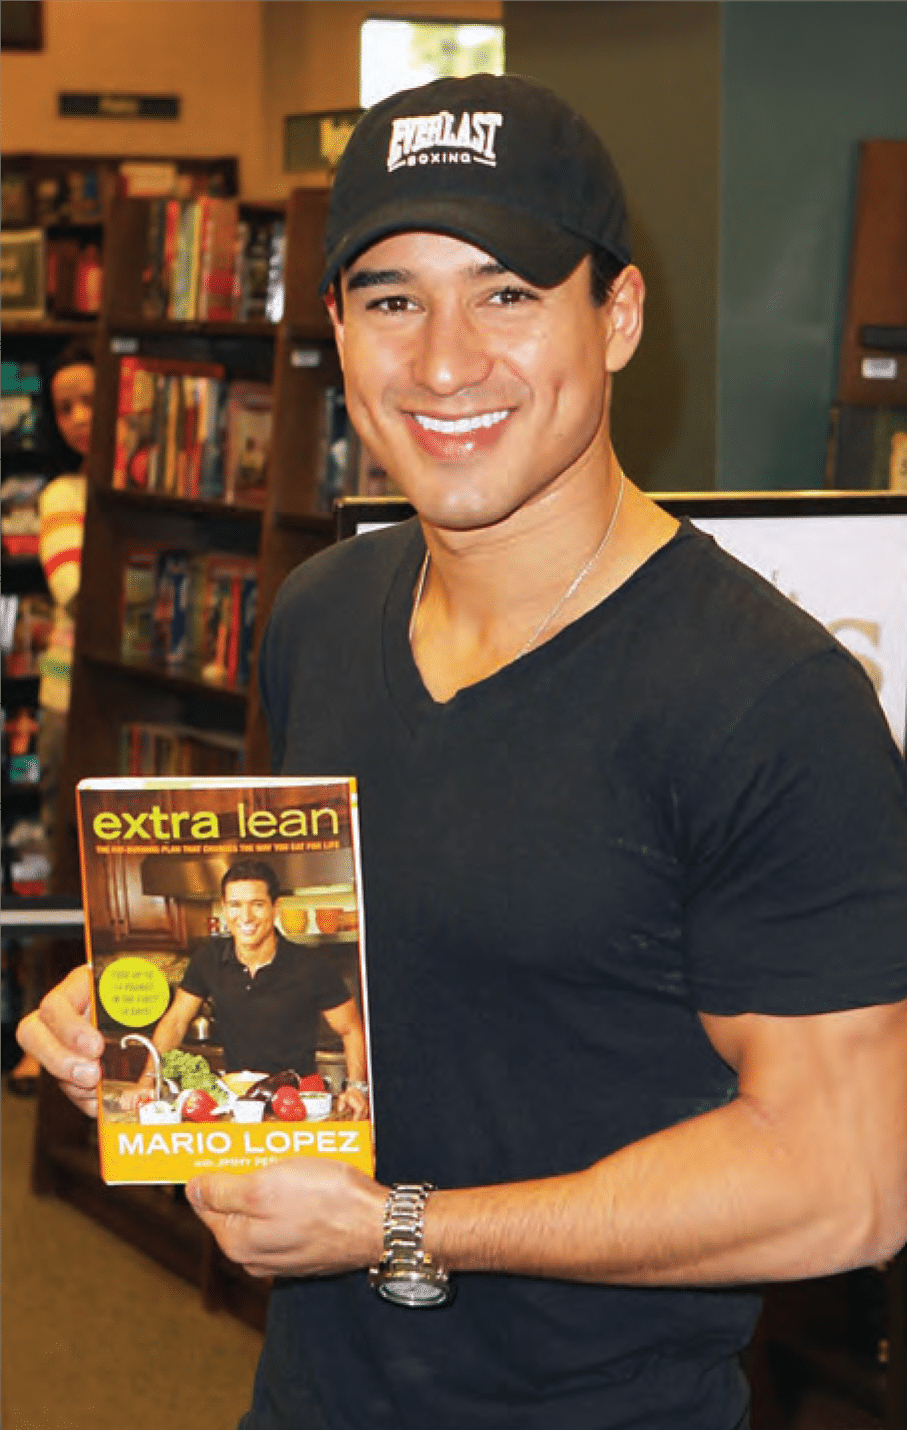 Mario Lopex holding up his book Extra Lean